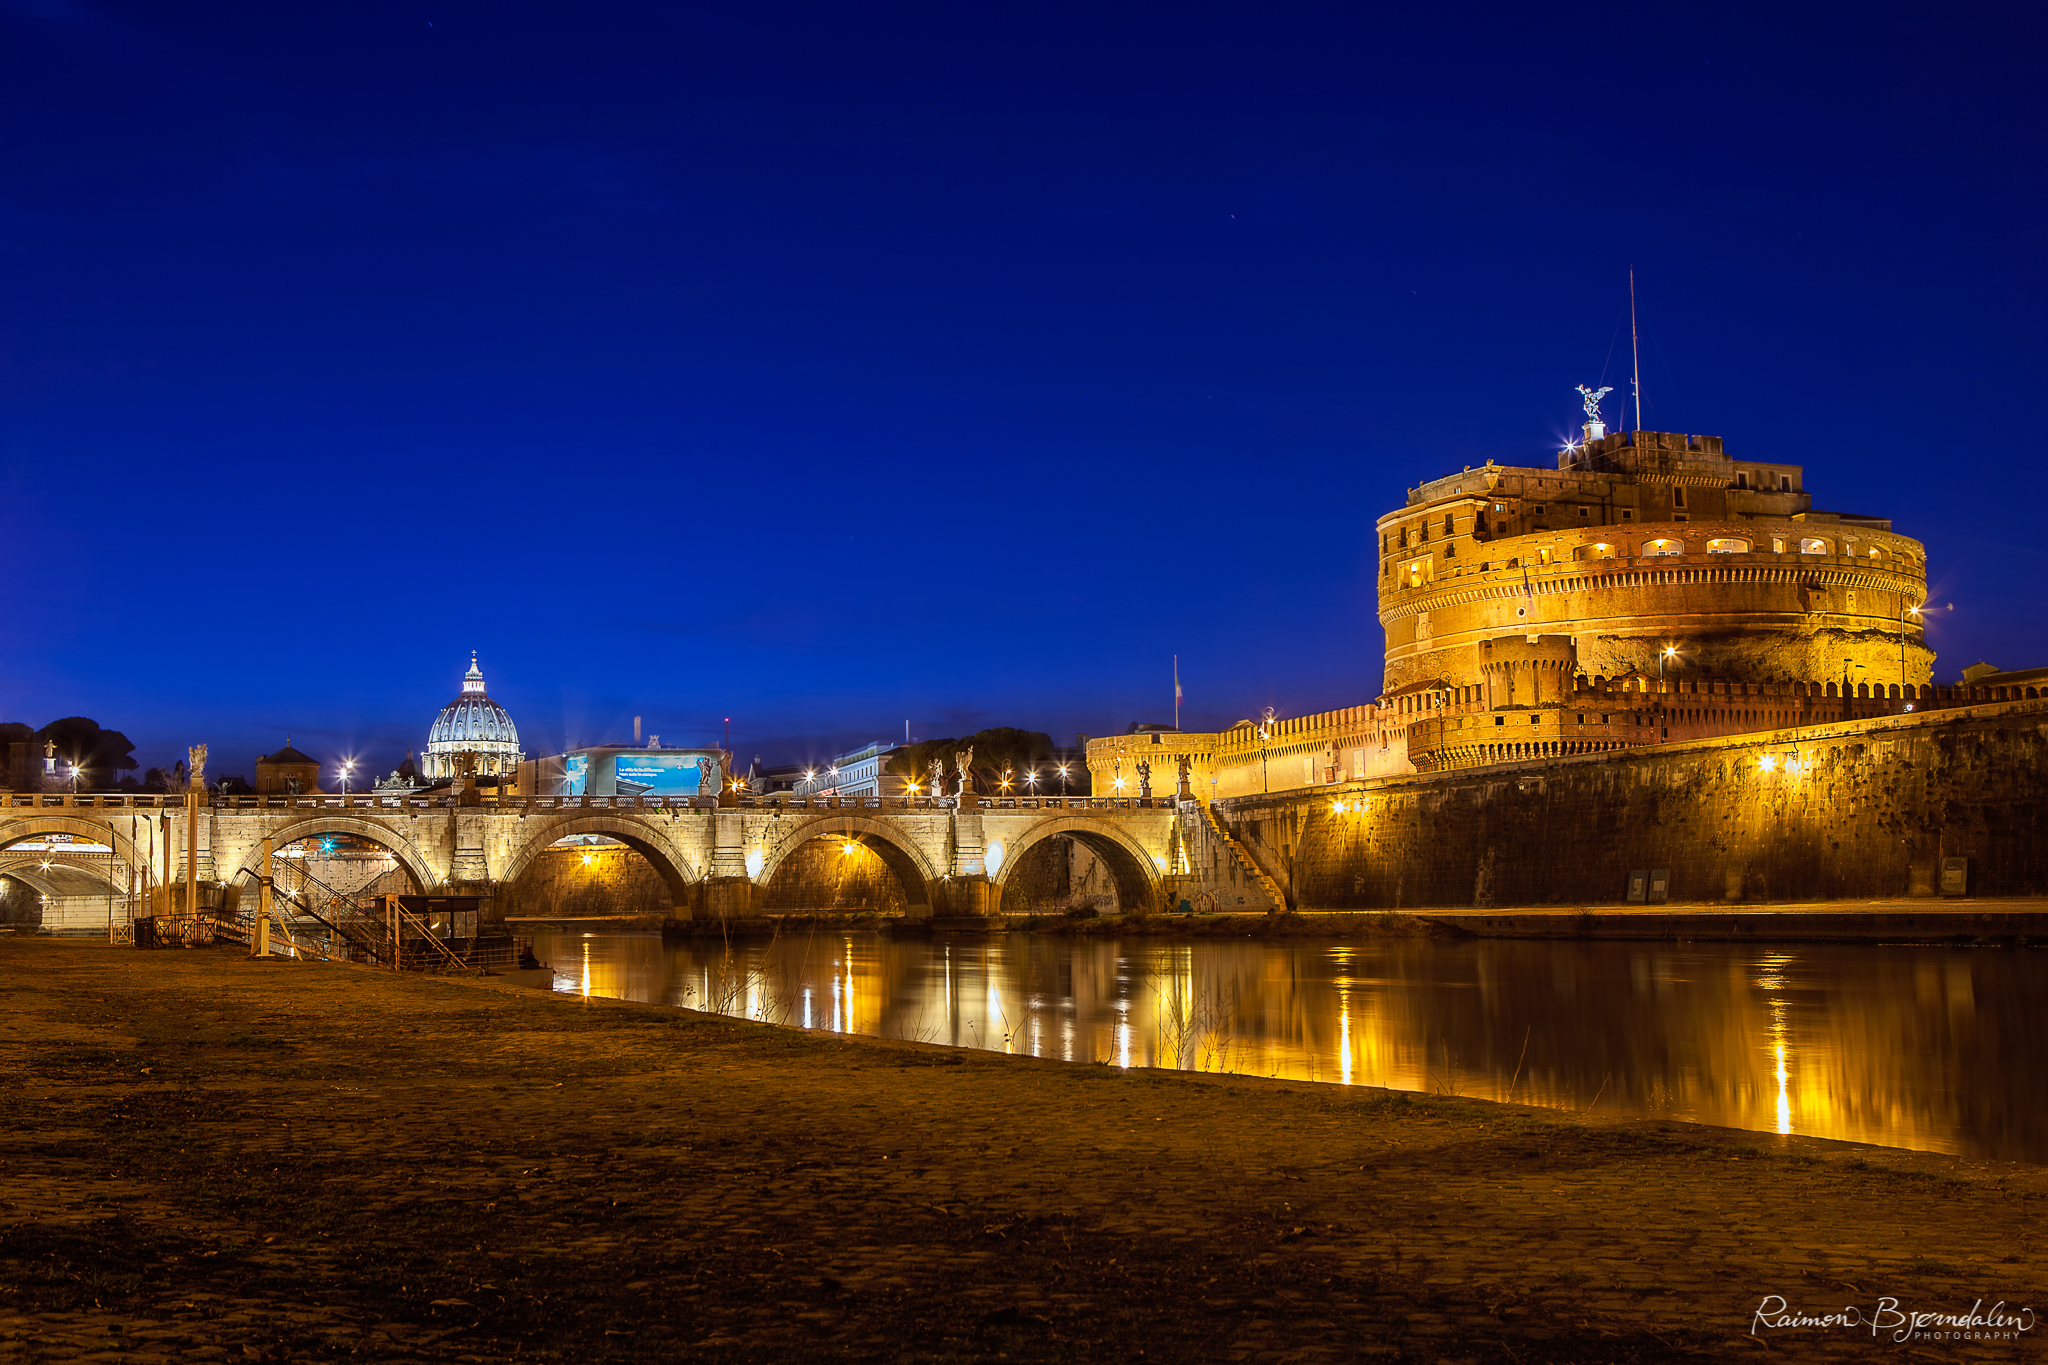 Castle St. Angelo in Rome, Italy.